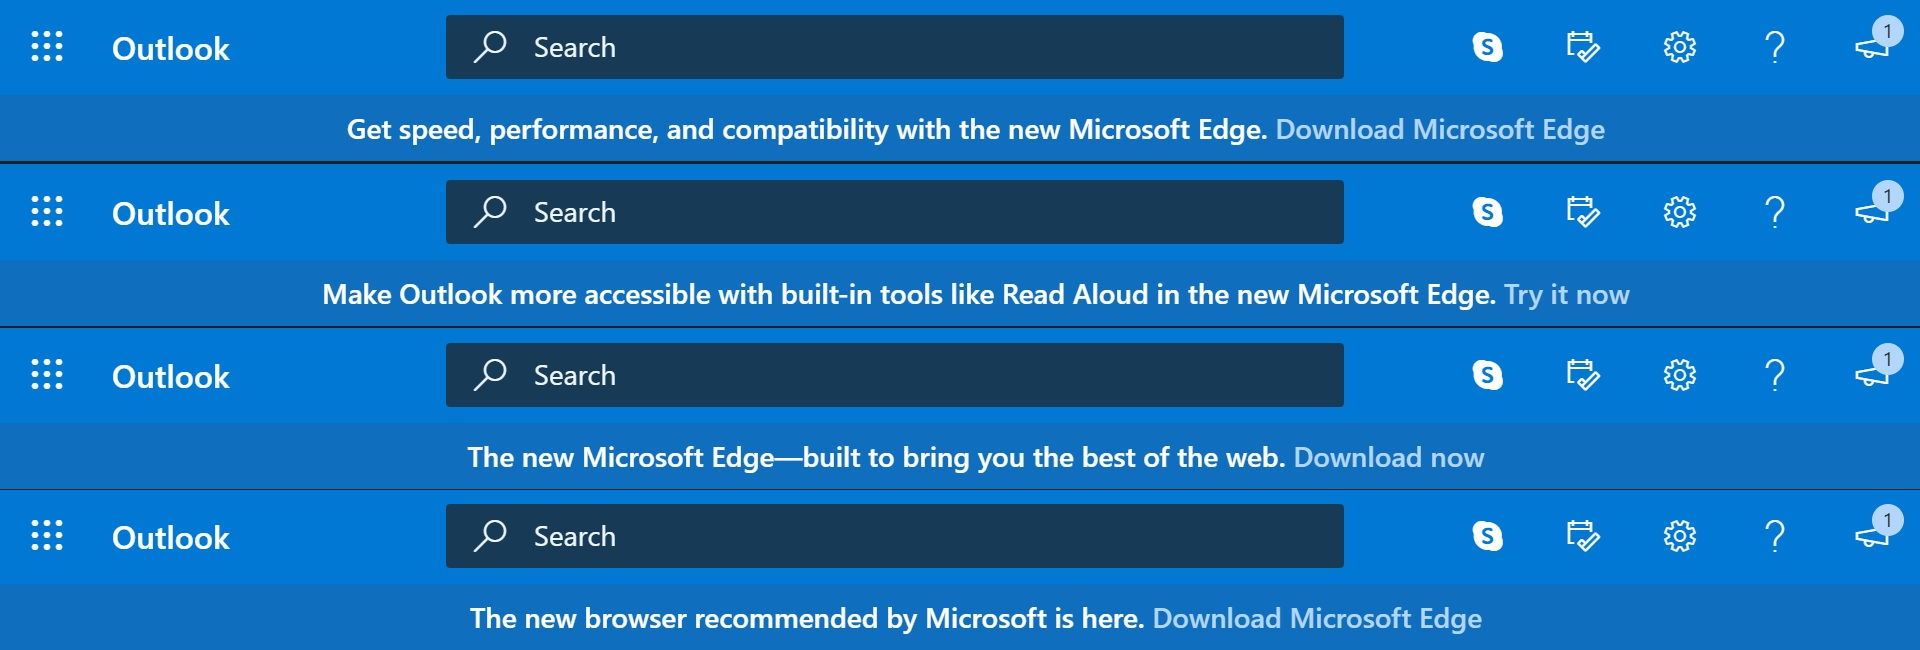 Outlook Edge ad